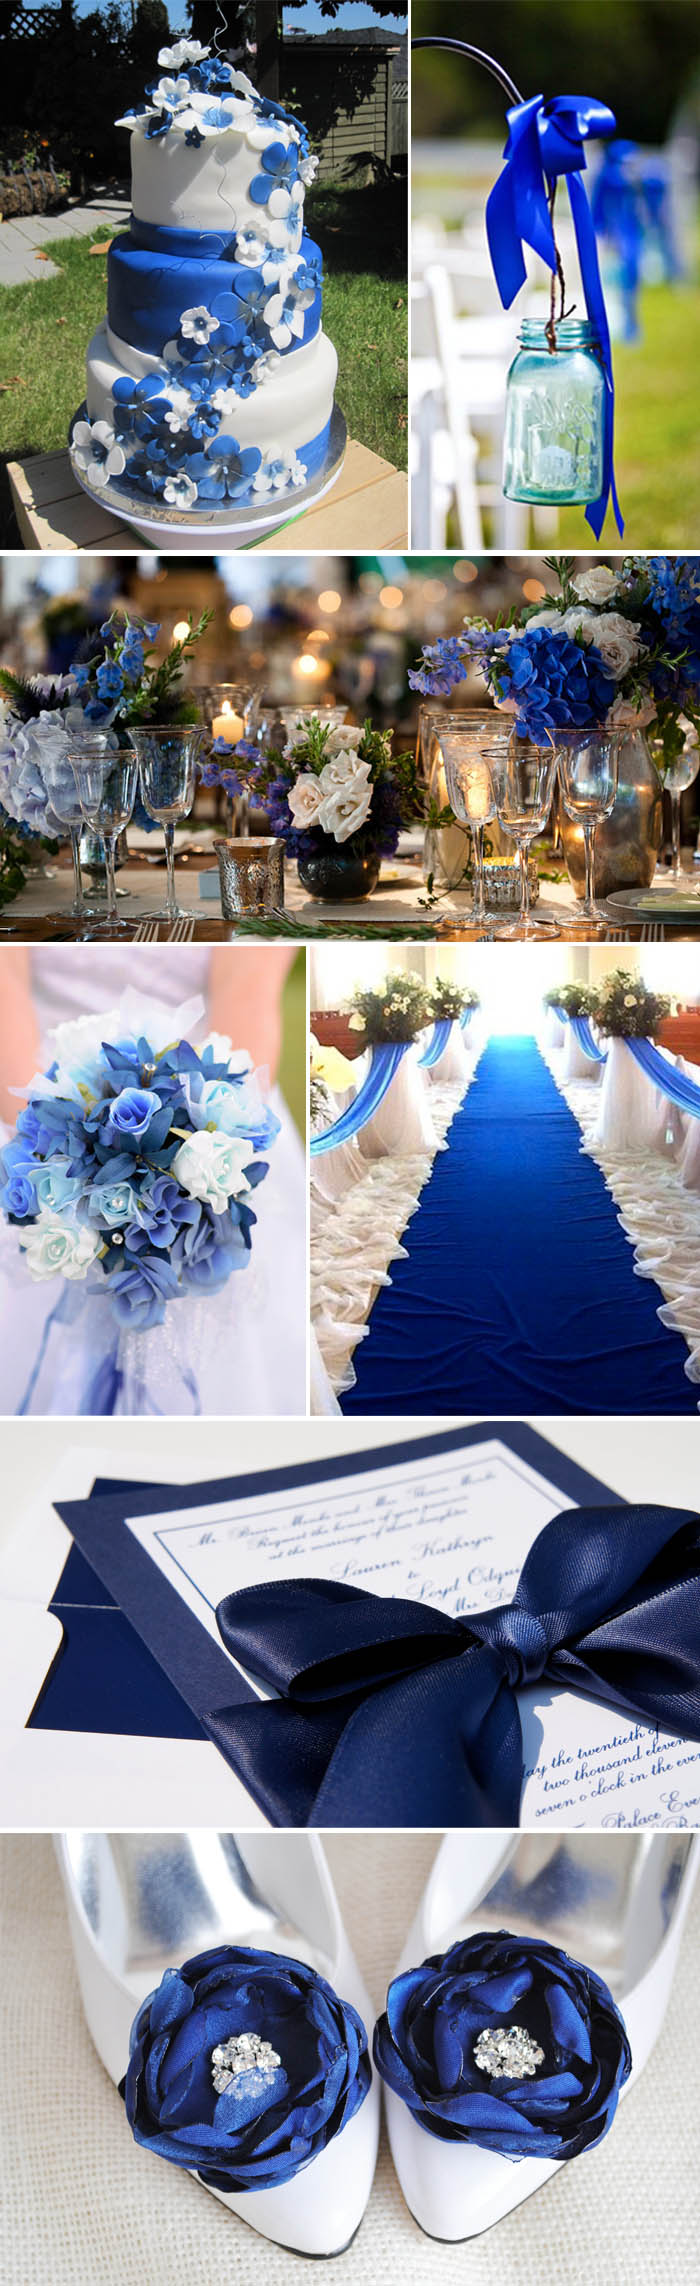 Color de boda. Azul